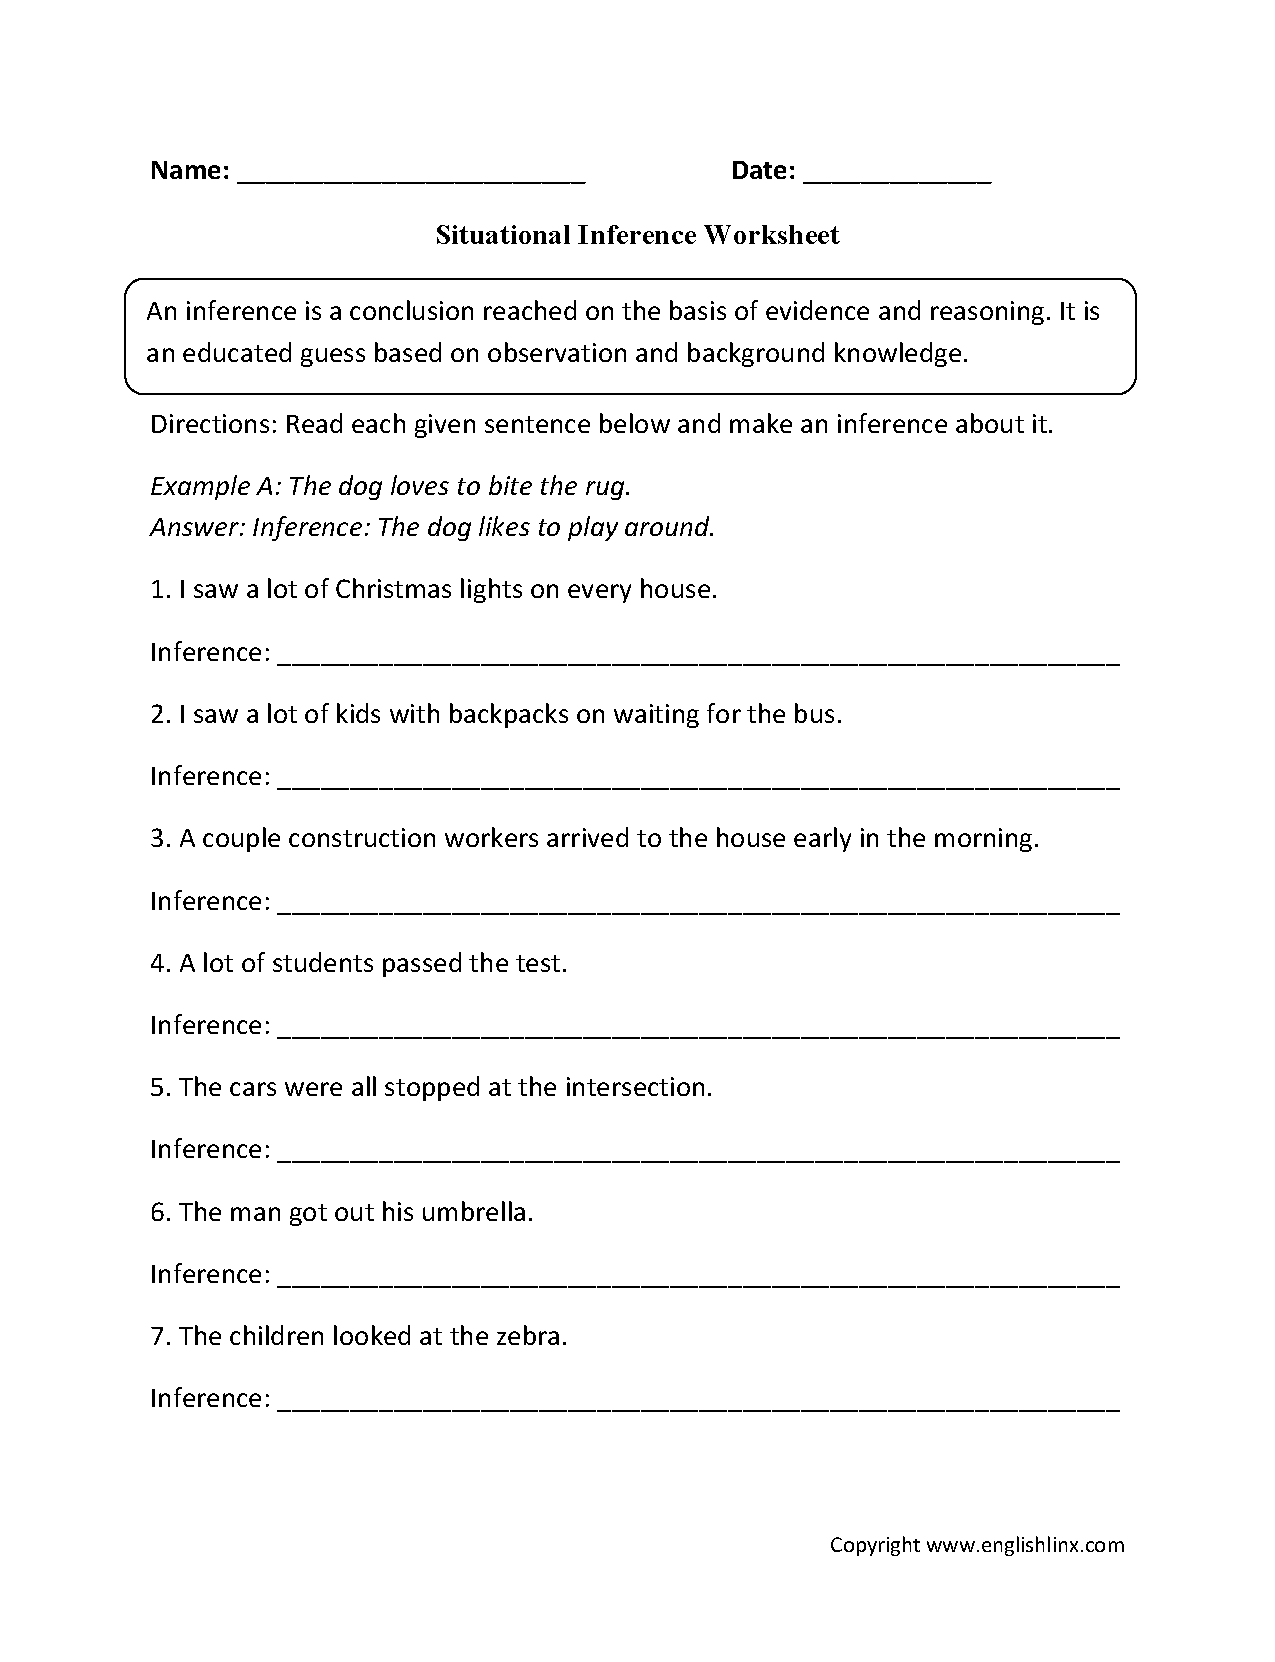 Reading Worksheets – Drawing Conclusions Worksheets 4th Grade